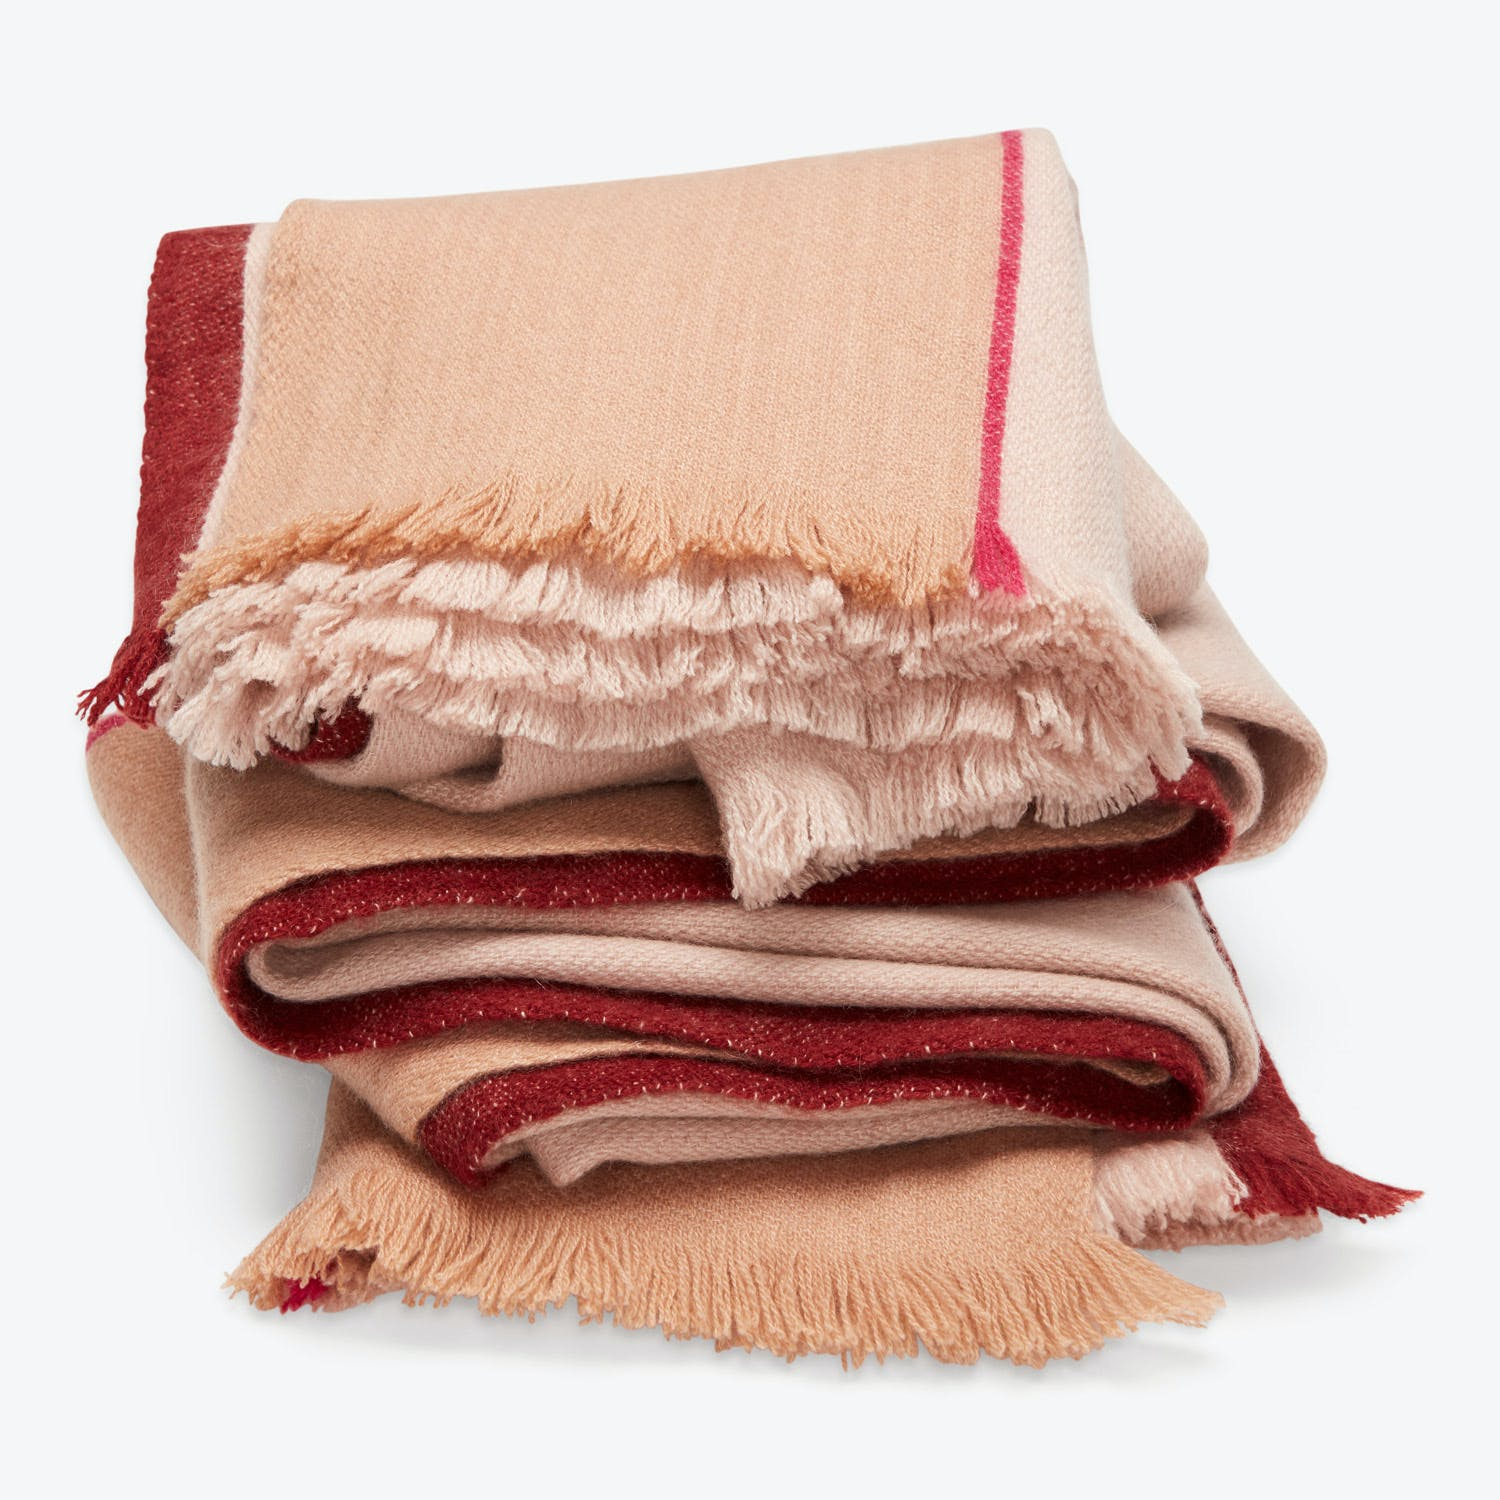 Product Image - Strata Cashmere Throw Desert Sand